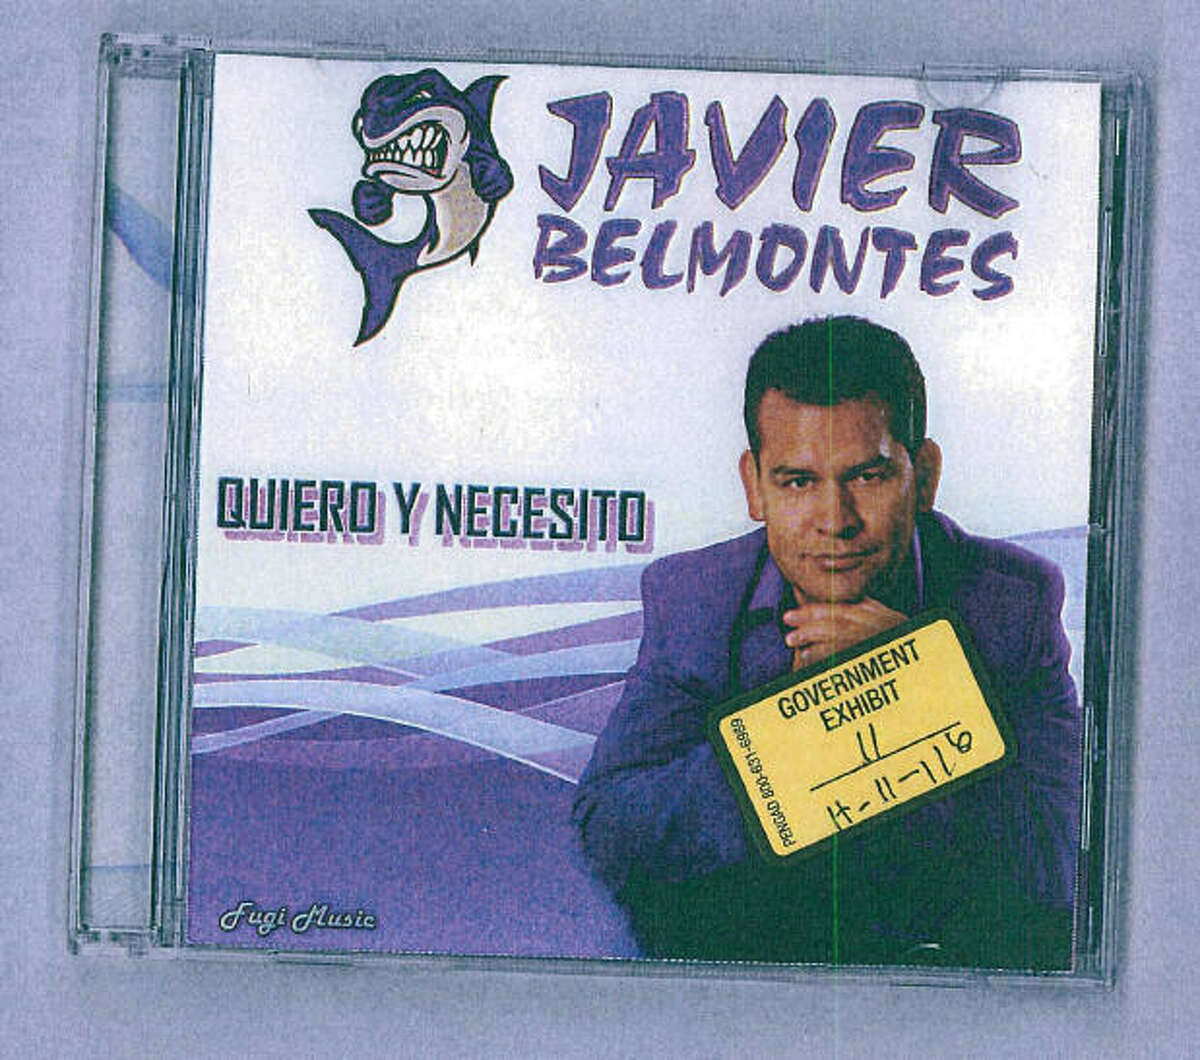 Javier Belmontes, shown on his 2007 CD cover, sang a song about heartbreak and run-ins with the law, some of which later came true for him in real life.